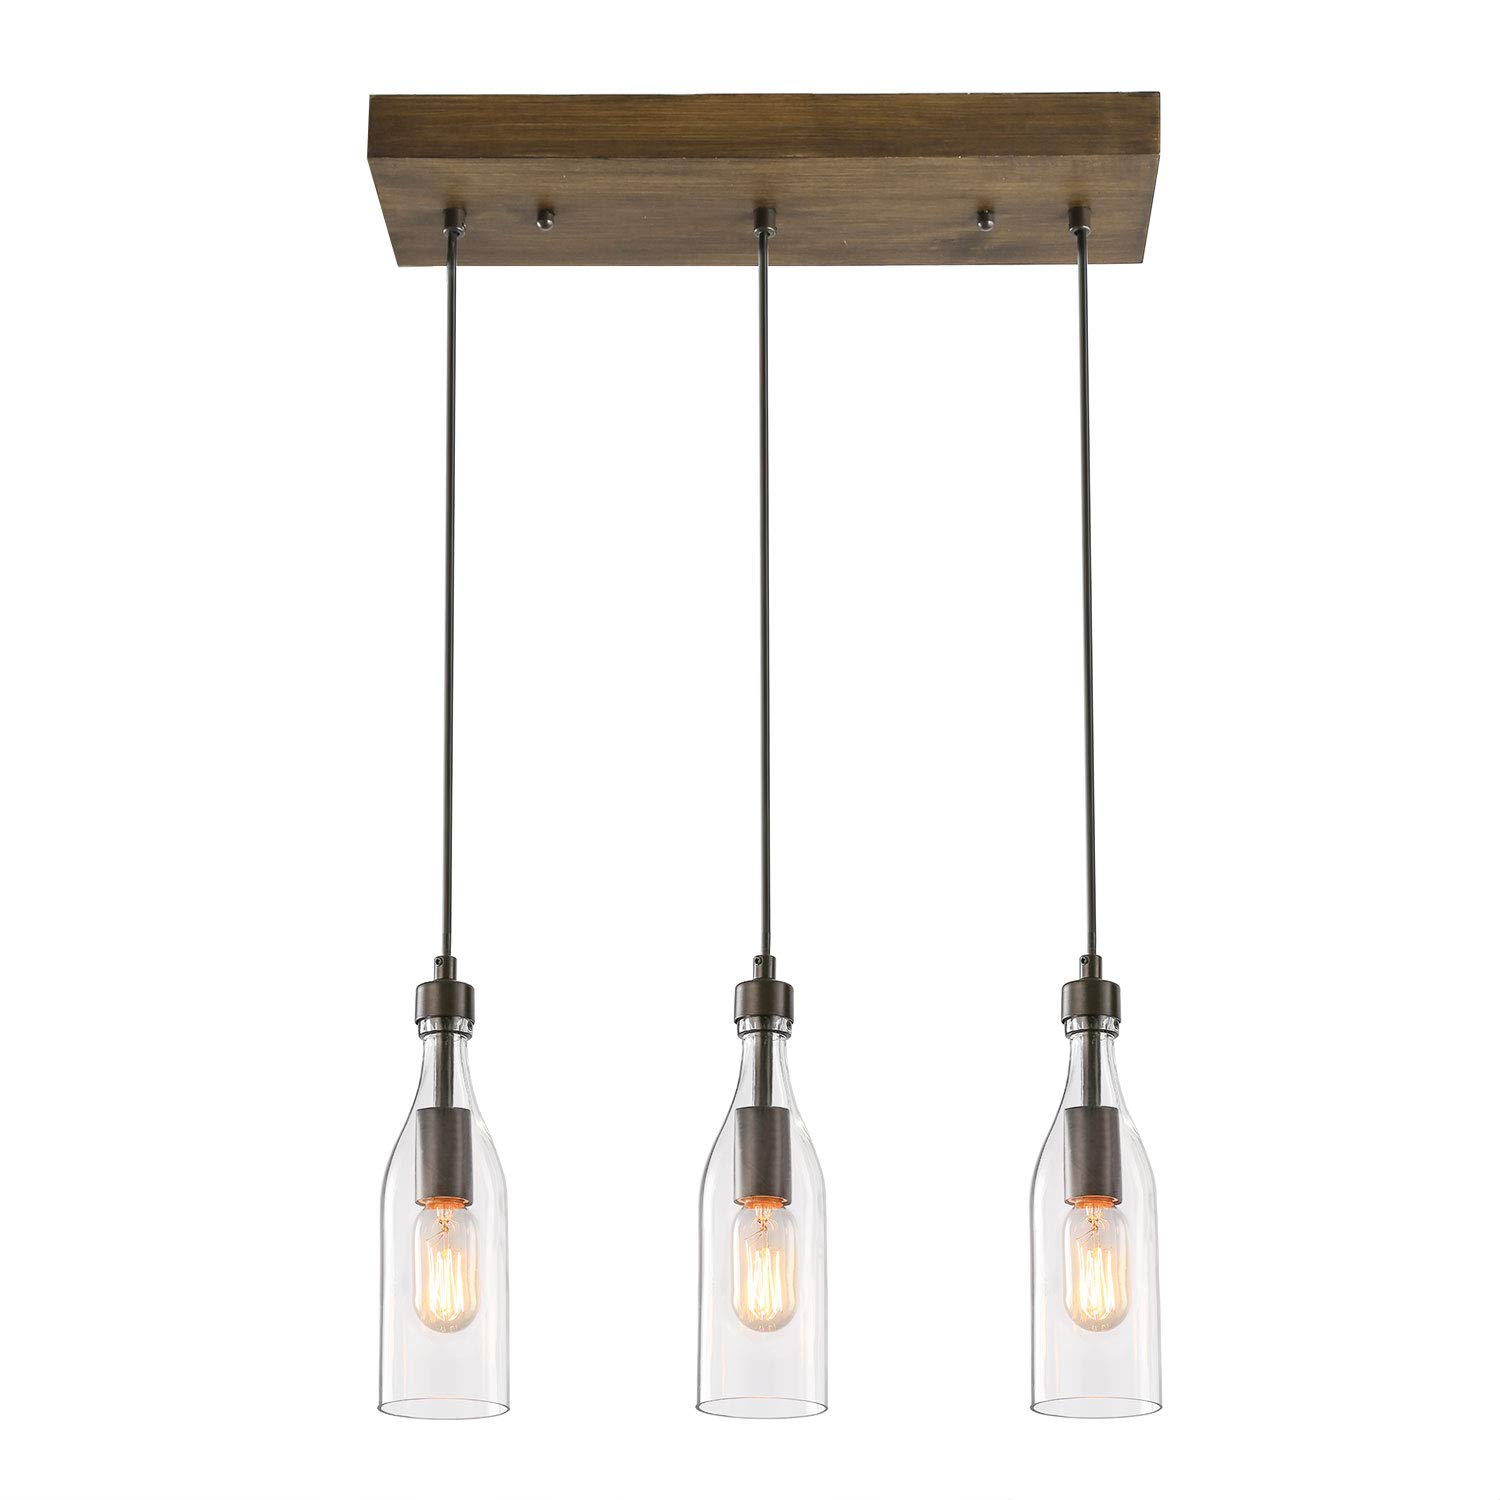 LNC A03491 Wooden Pendant Lights 3-Height Adjustable Farmhouse Chandelier for Kitchen Island and Dining Room, Brown